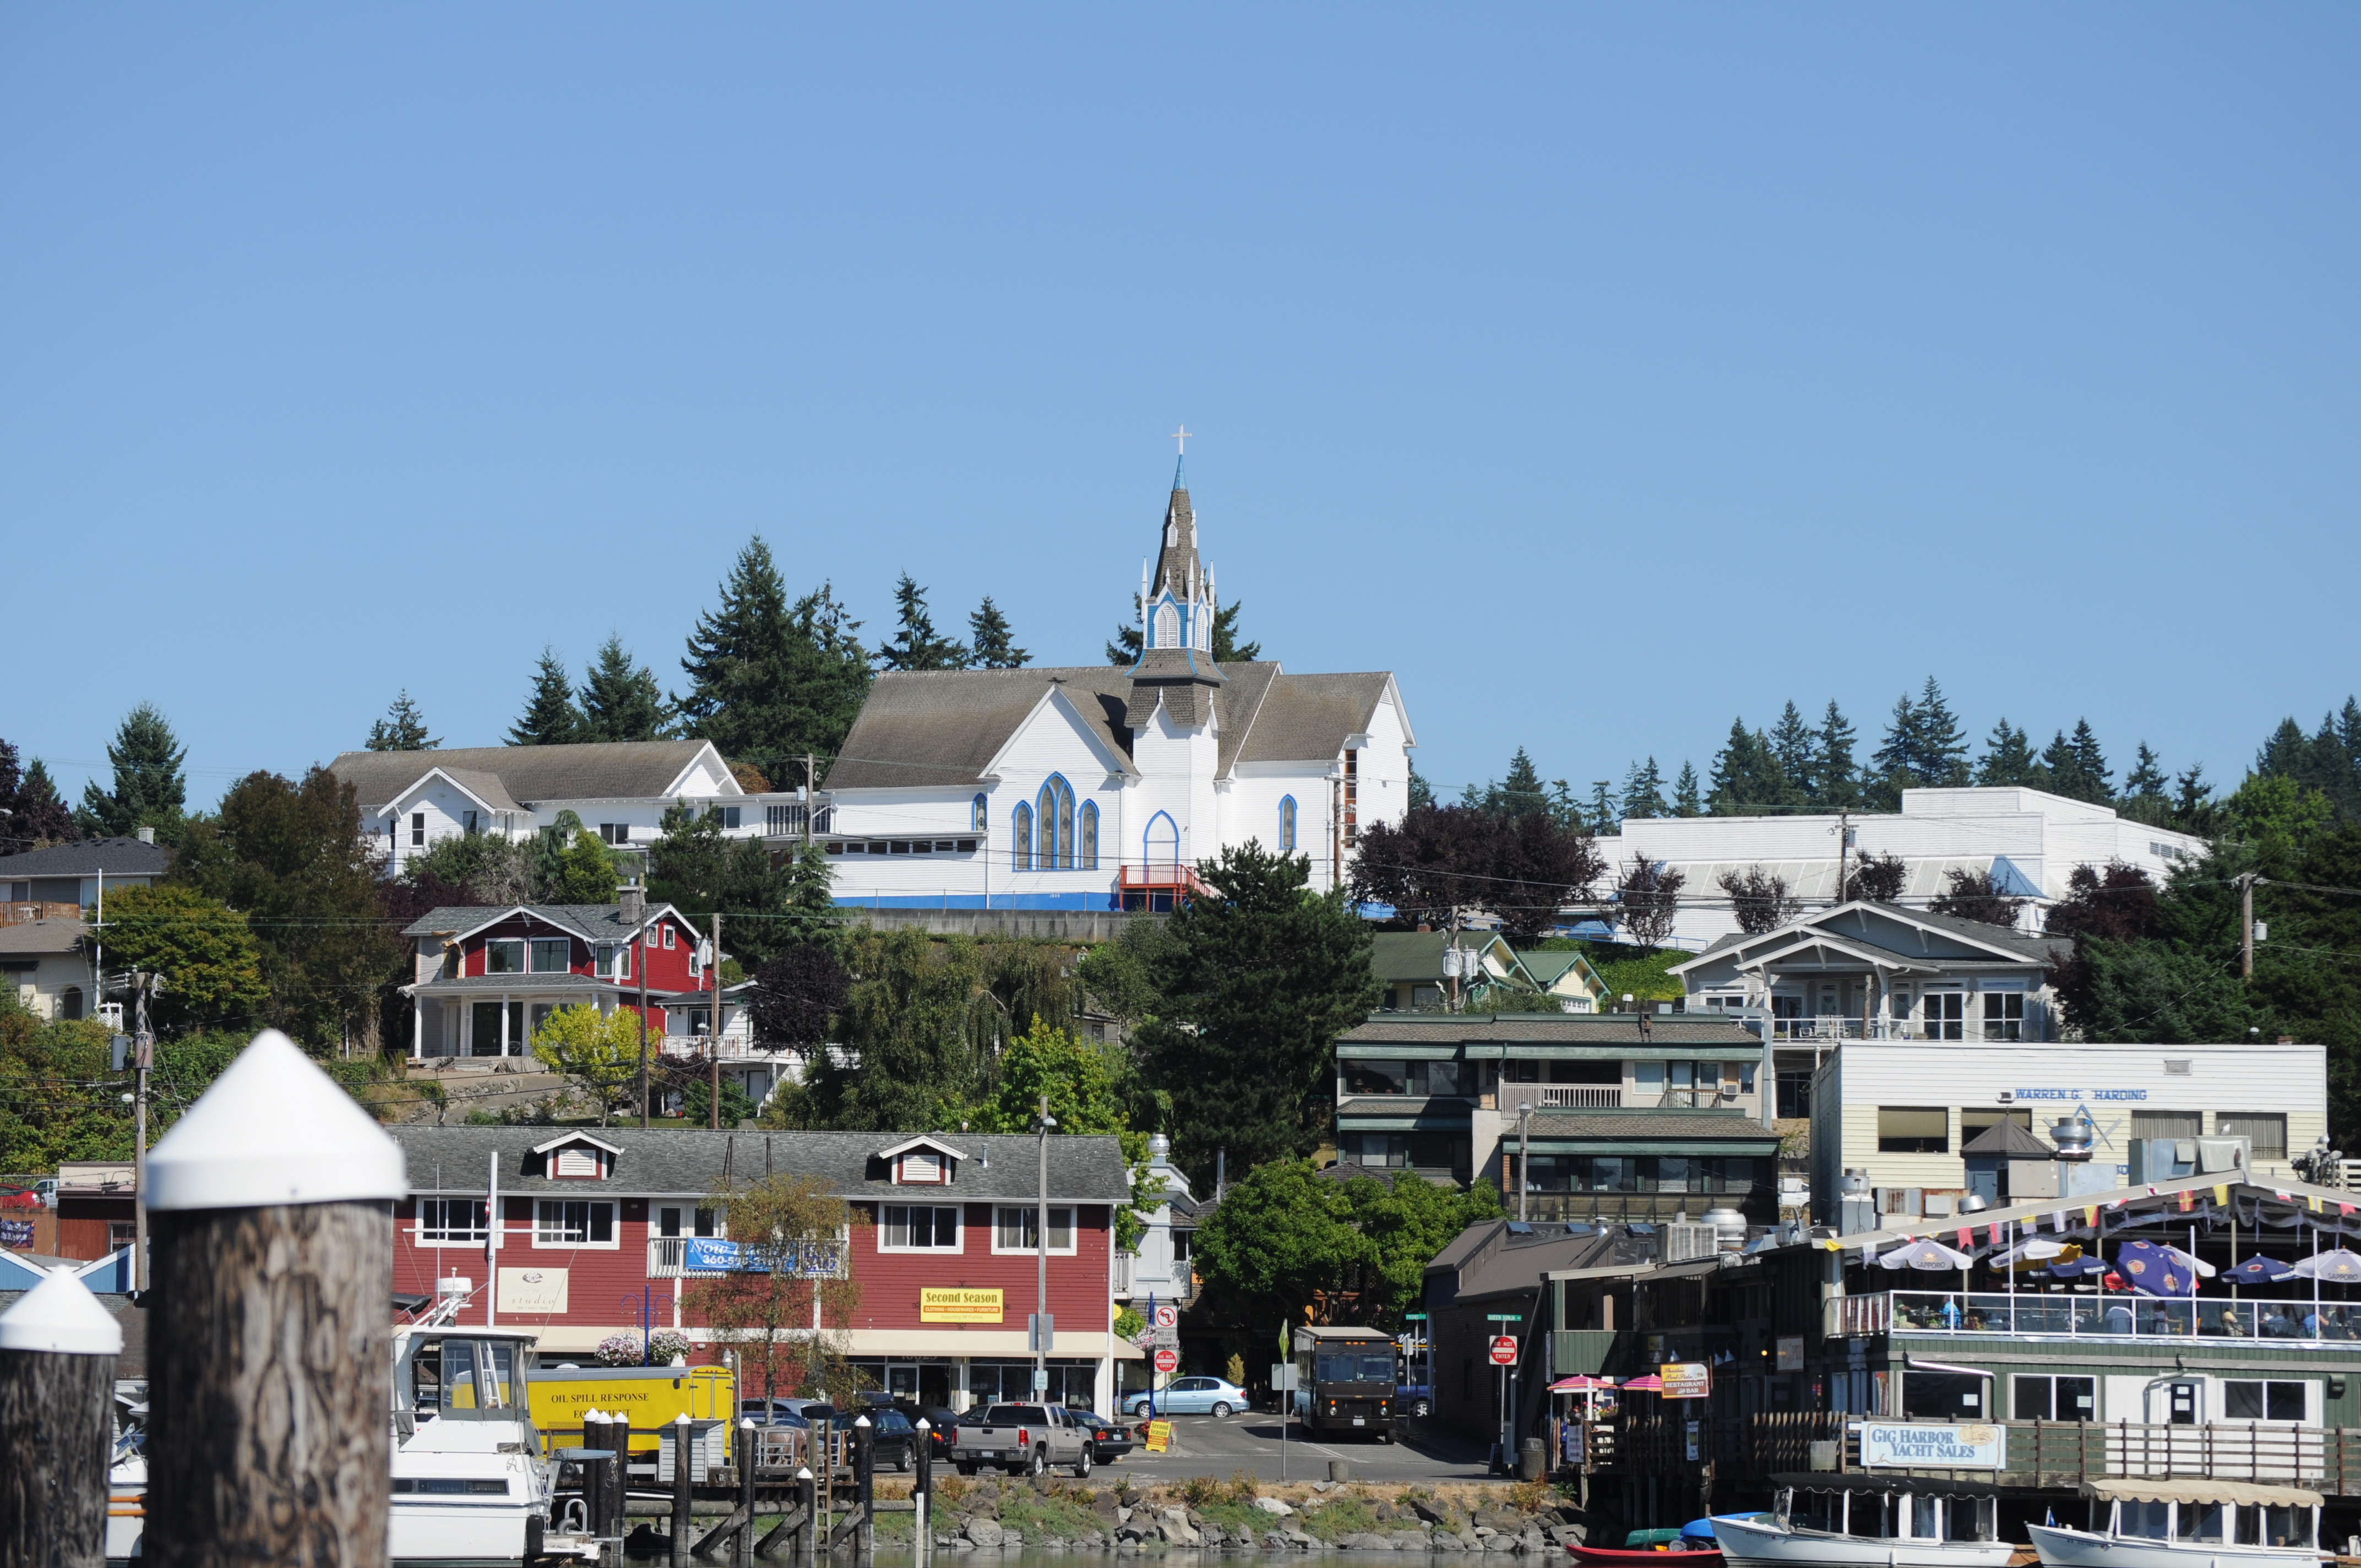 File:Poulsbo, WA from harbor 03.jpg - Wikimedia Commons